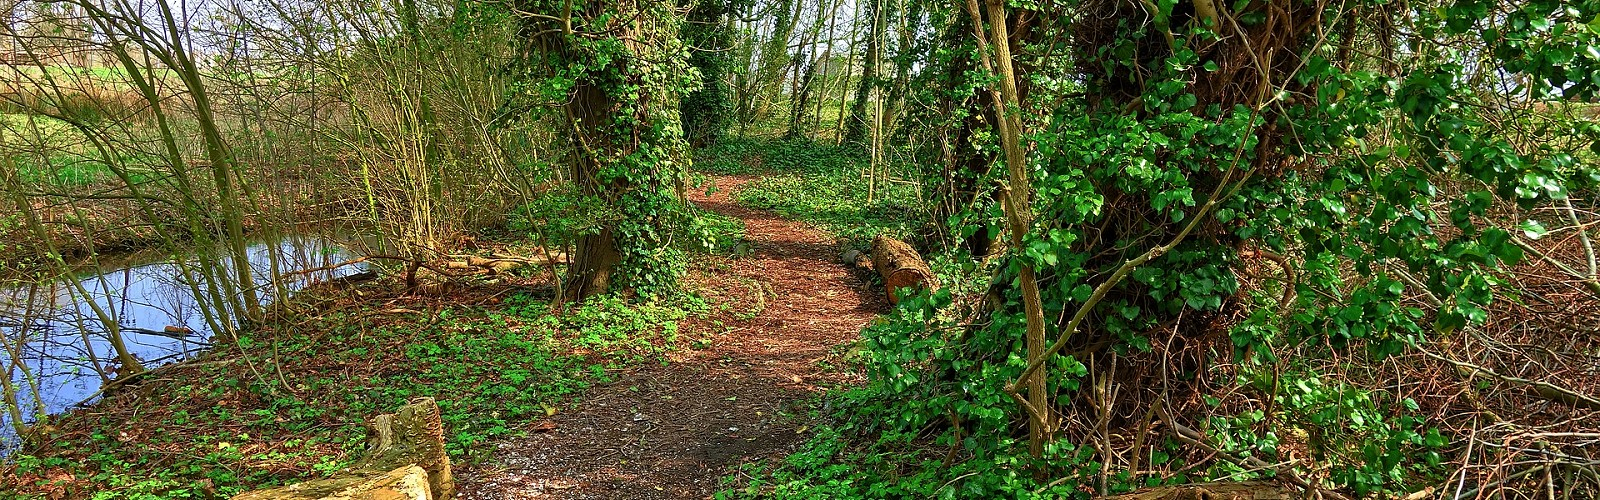 footpath through a open woodland (image: Mable Amber / pixabay)